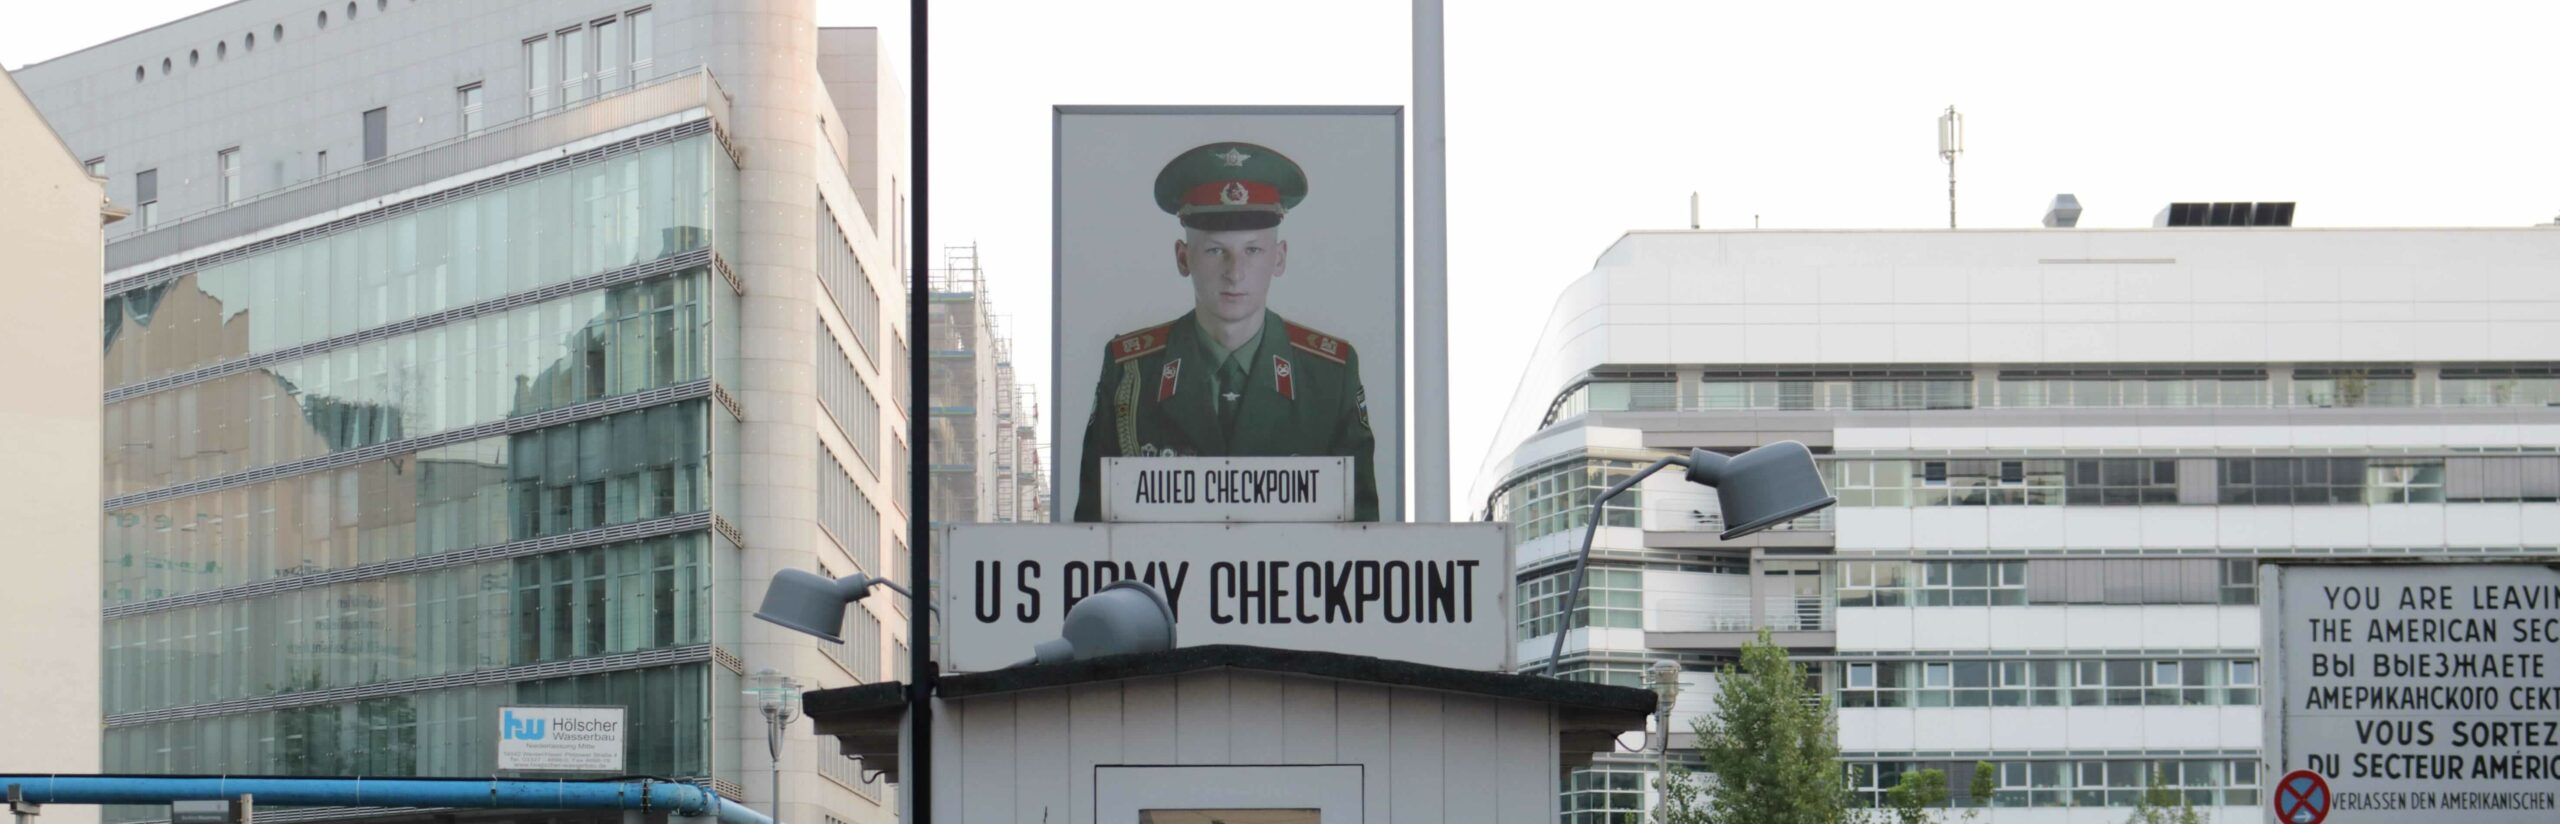 Checkpoint Charlie - US Checkpoint